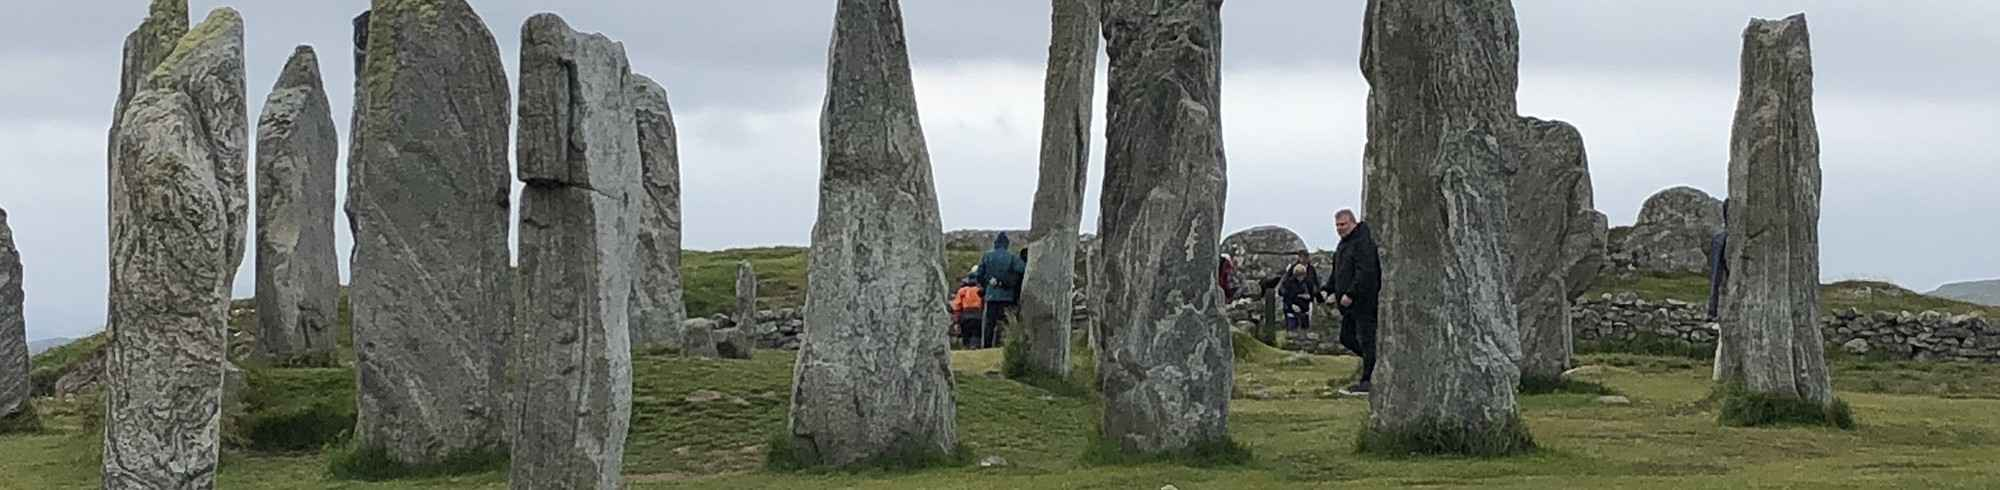 Callanish Stones, Stornoway, Isle of Lewis